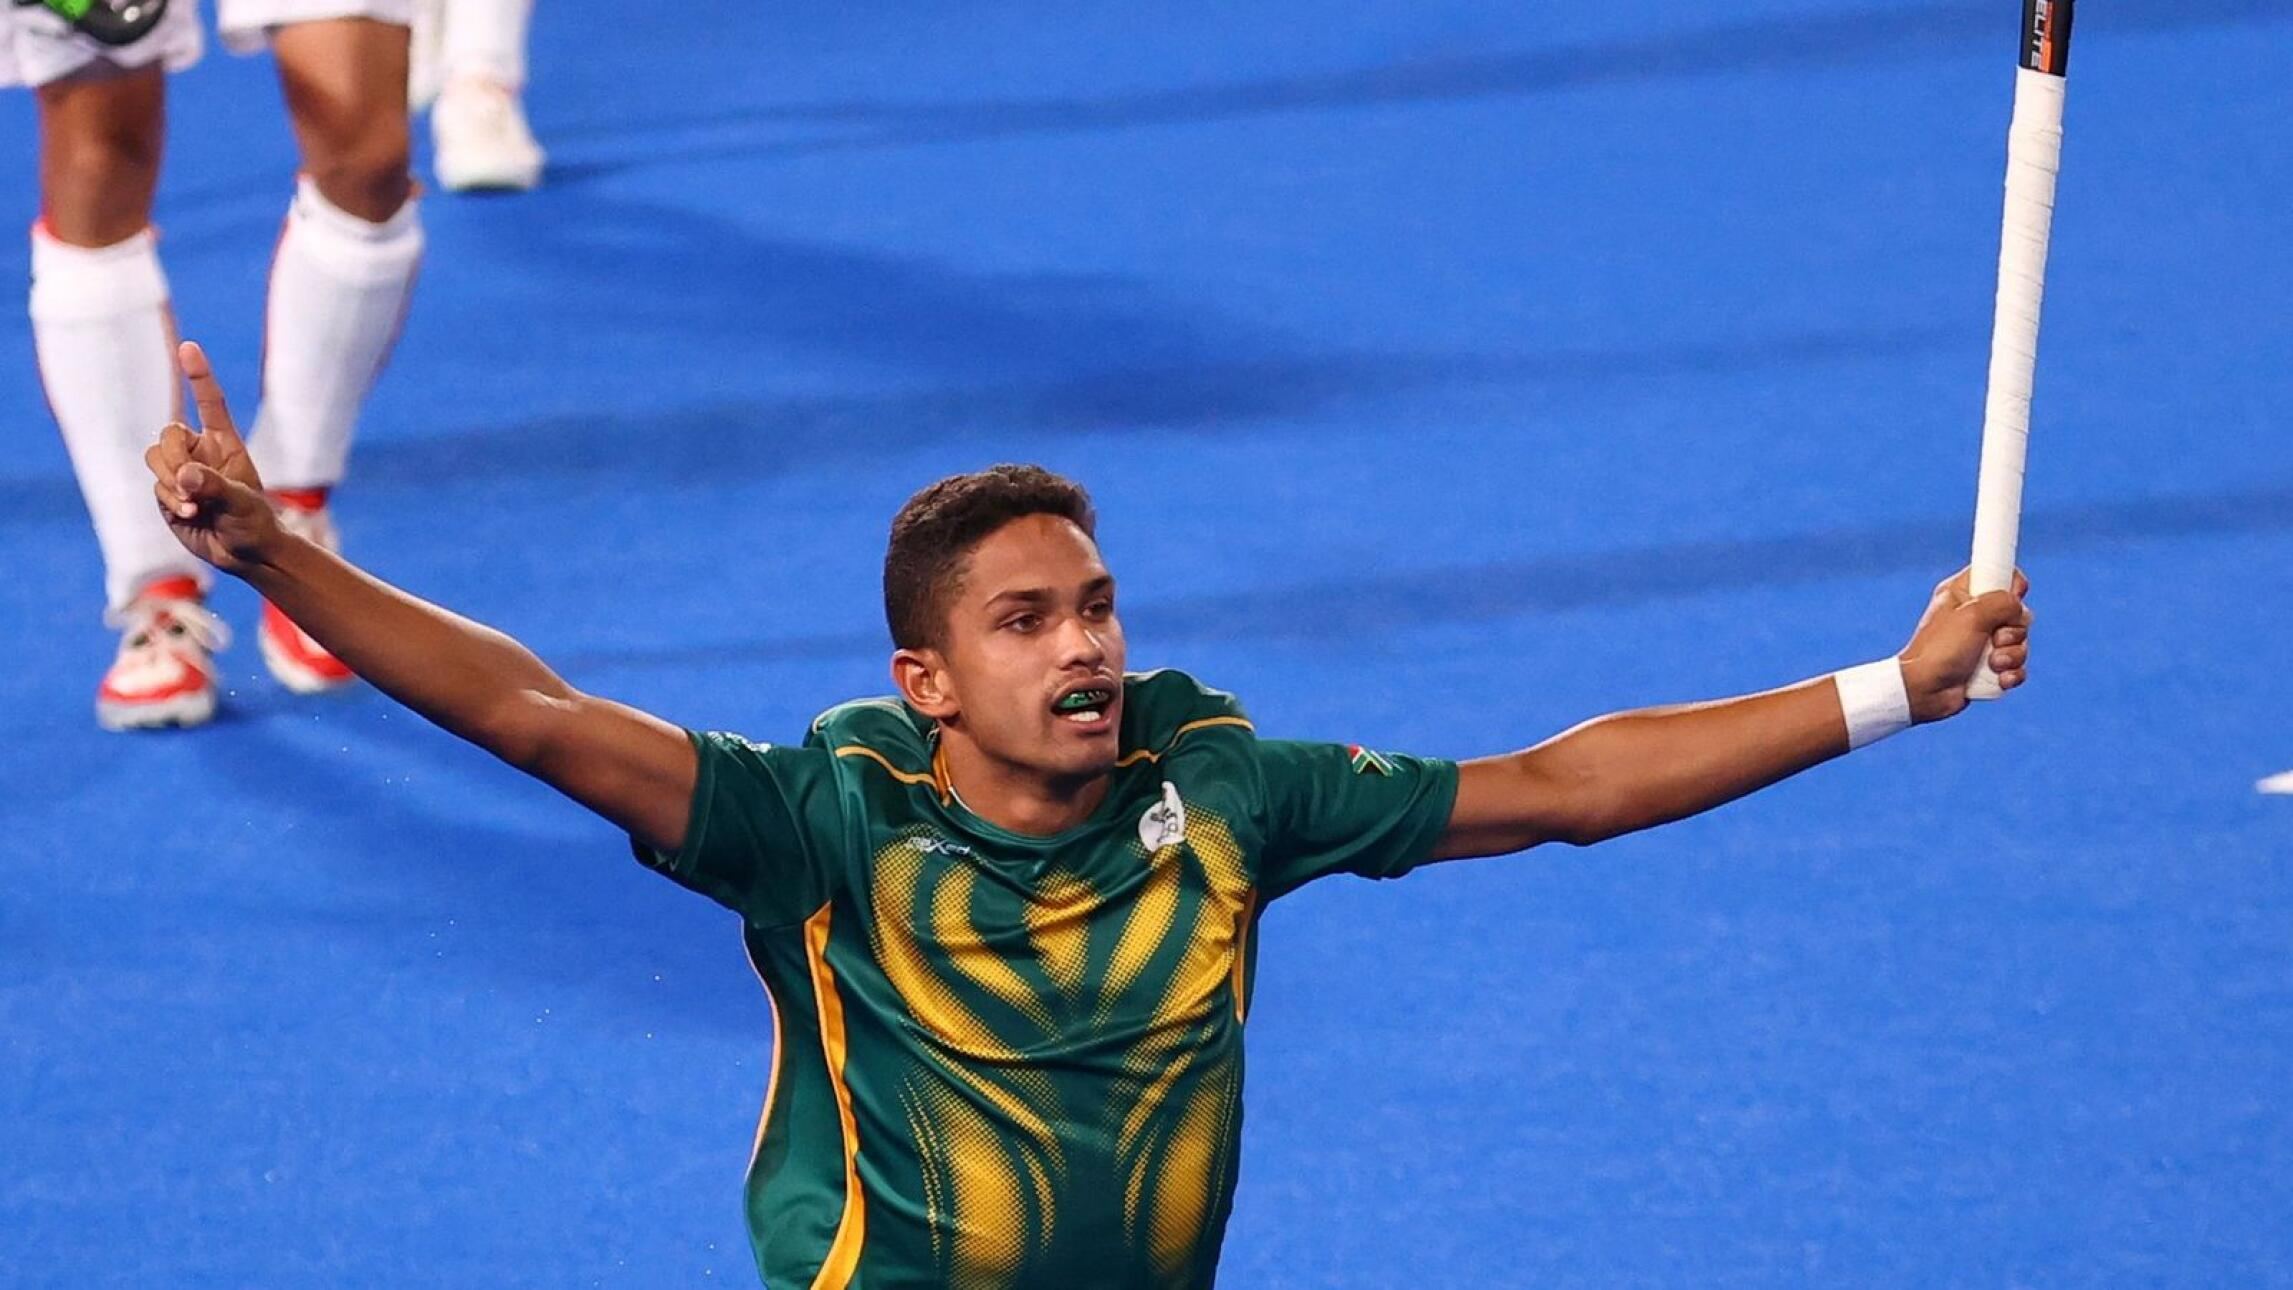 South Africa's Dayaan Cassiem celebrates after scoring against Belgium at the Tokyo Olympics